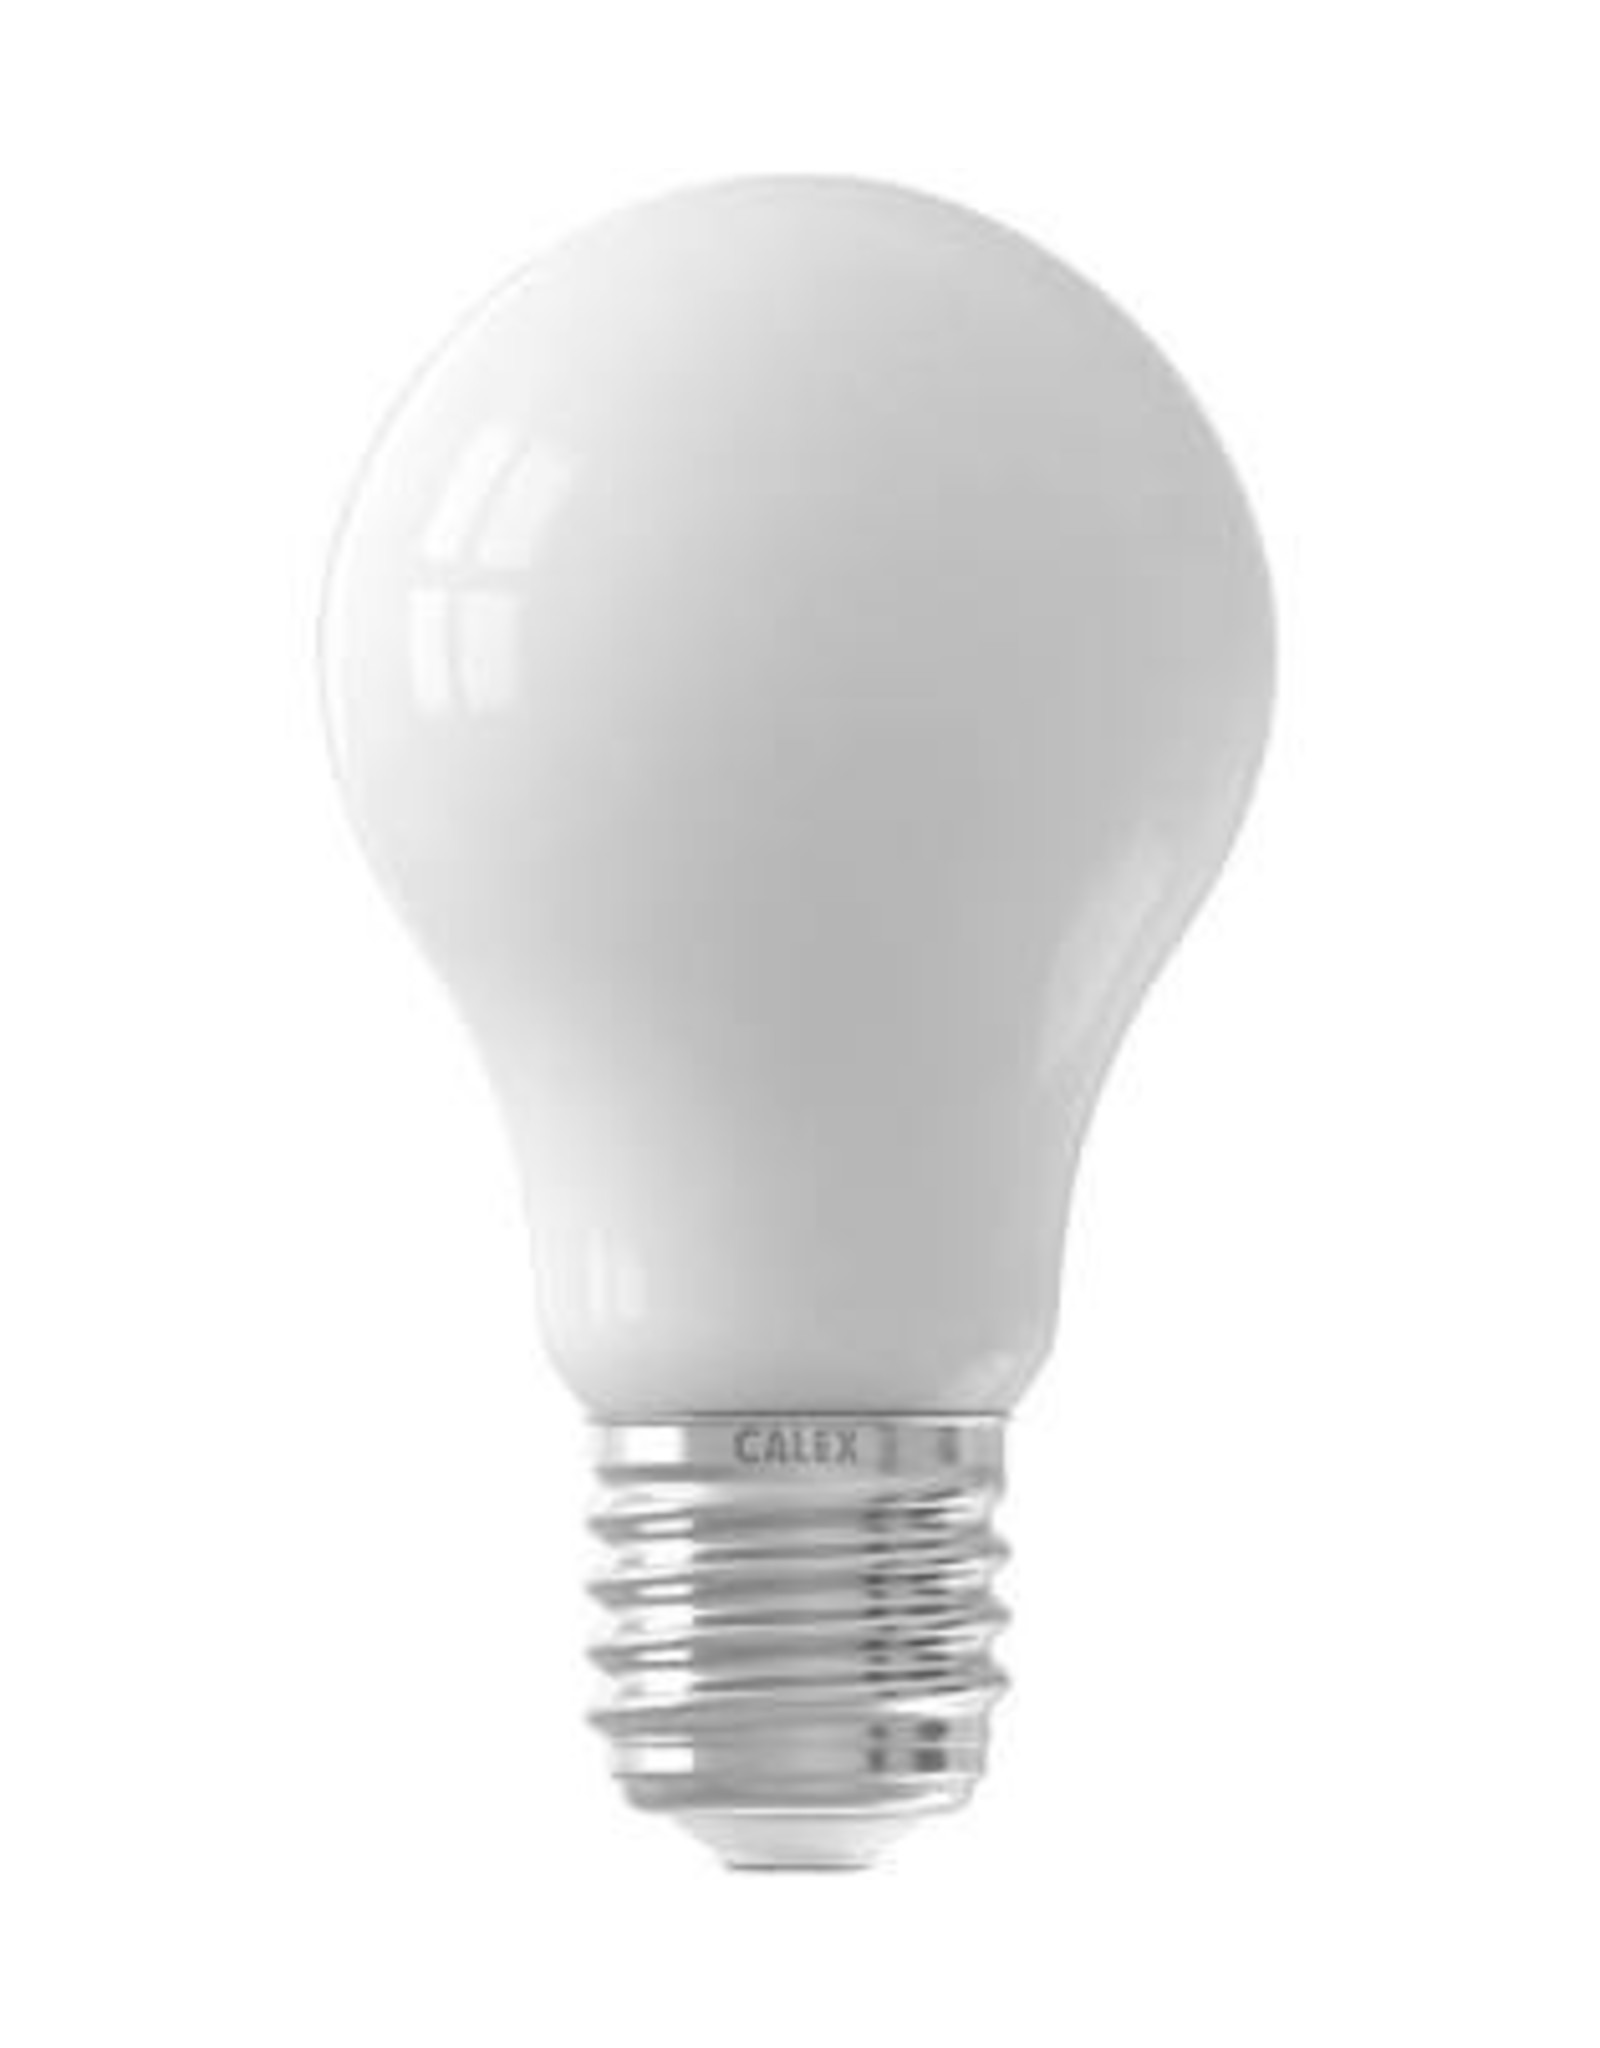 Calex LED Full Glass Filament GLS-lamp 220-240V 7W 810lm E27 A60, Softline 2700K CRI80 Dimmable, energy label A++